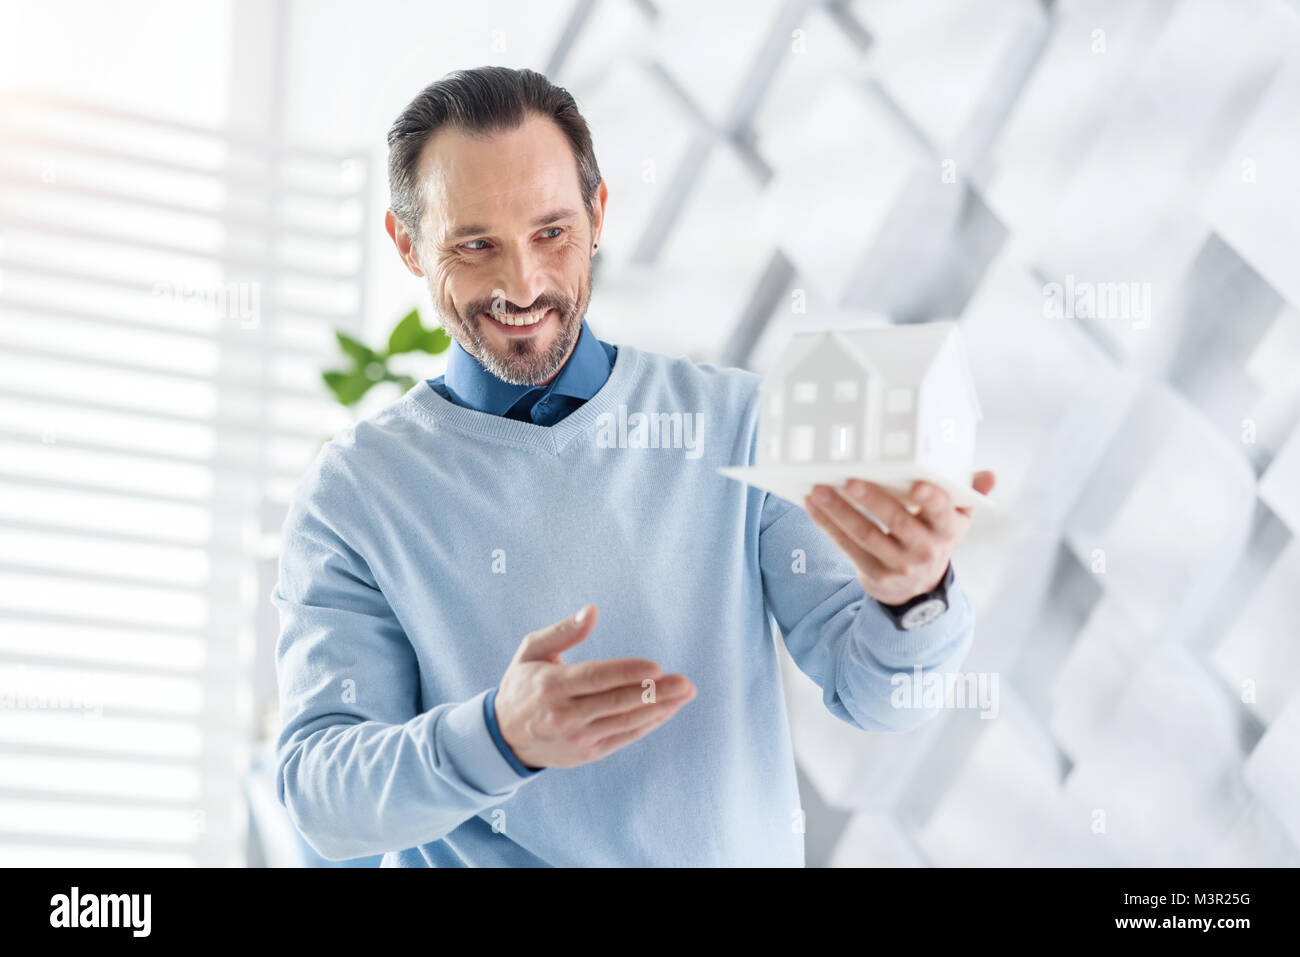 Inspired architect holding a model of a house - Stock Image